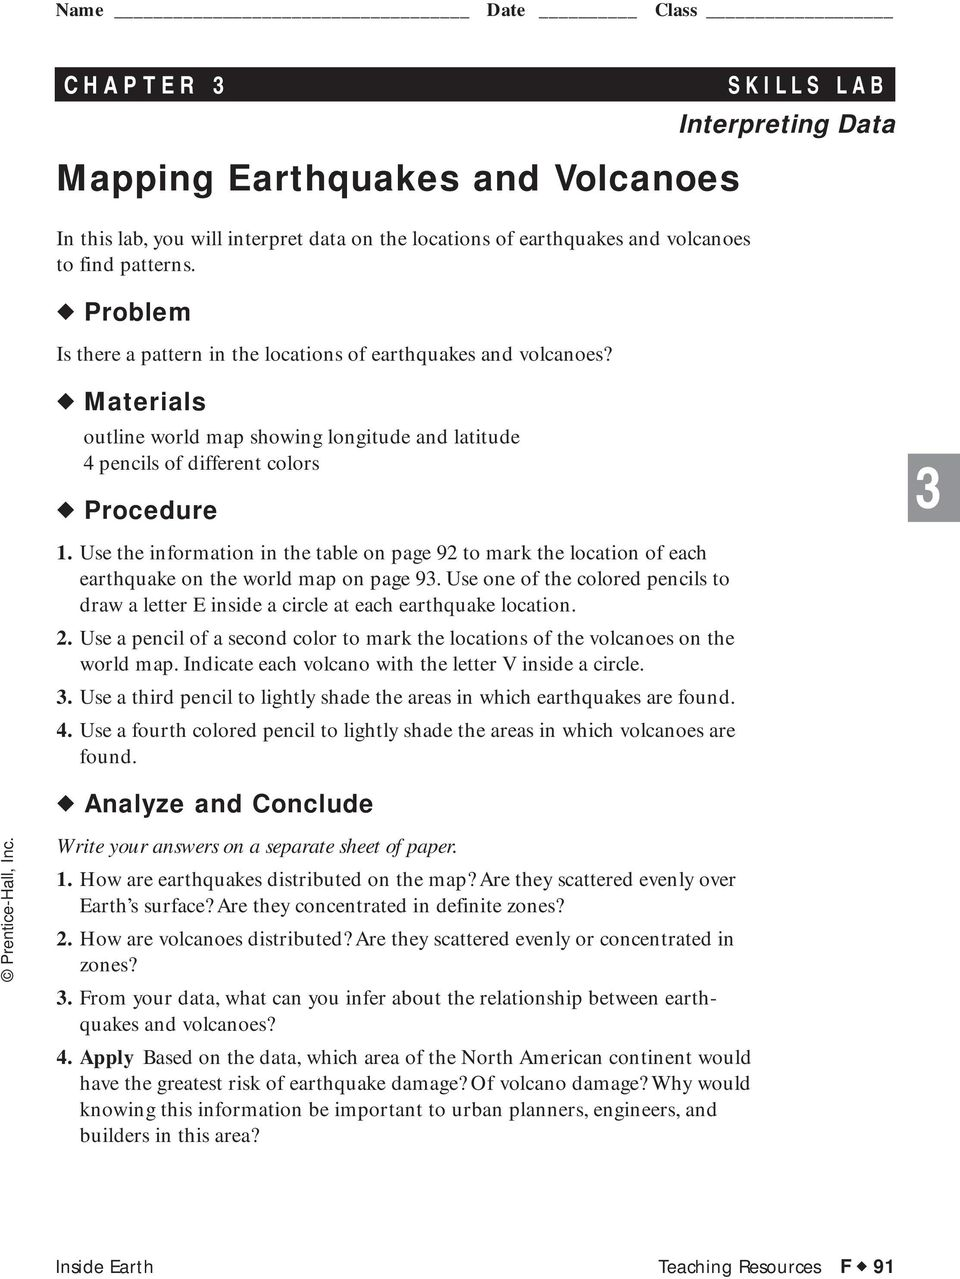 Use the information in the table on page 92 to mark the location of each earthquake on the world map on page 9.